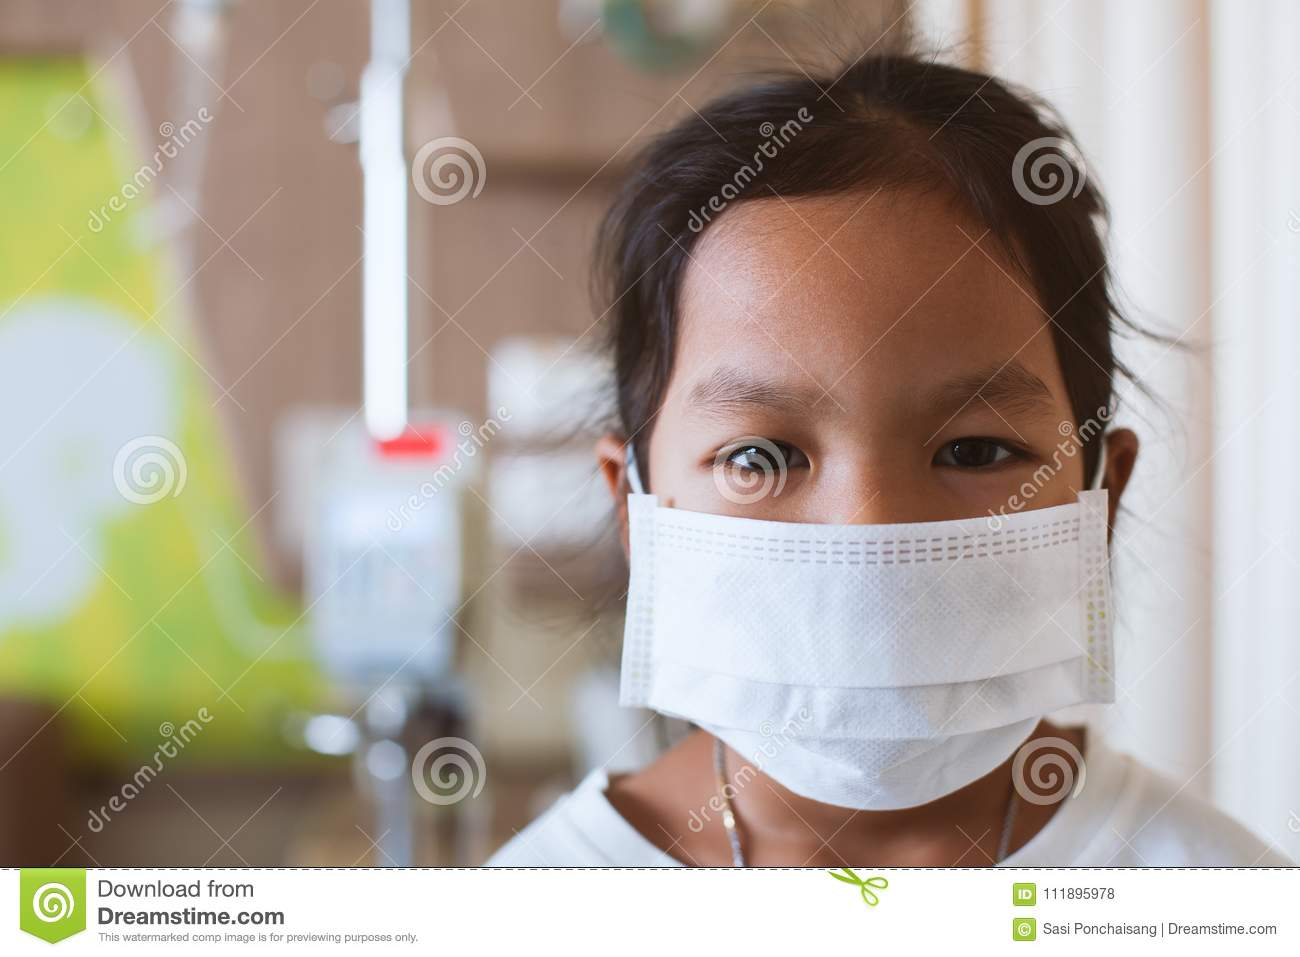 To acquire How to face wear mask when sick picture trends